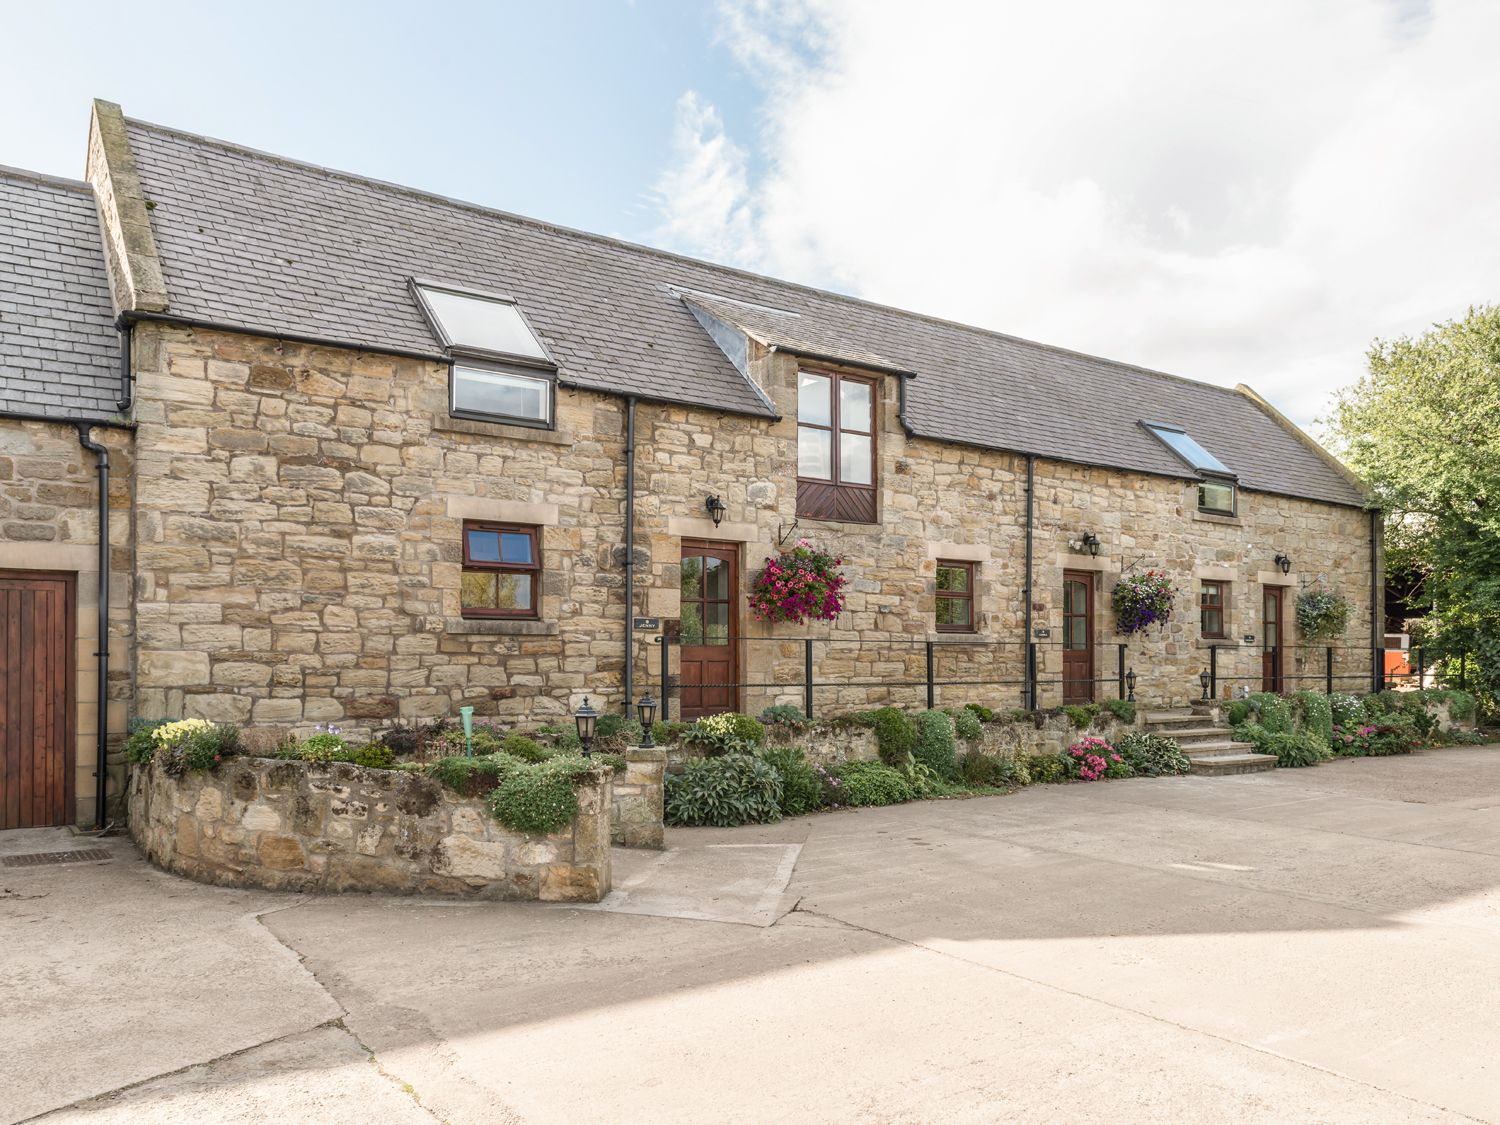 Northumberland Holiday Cottages: Jenny's Cottage, Alnmouth | Sykes Cottages